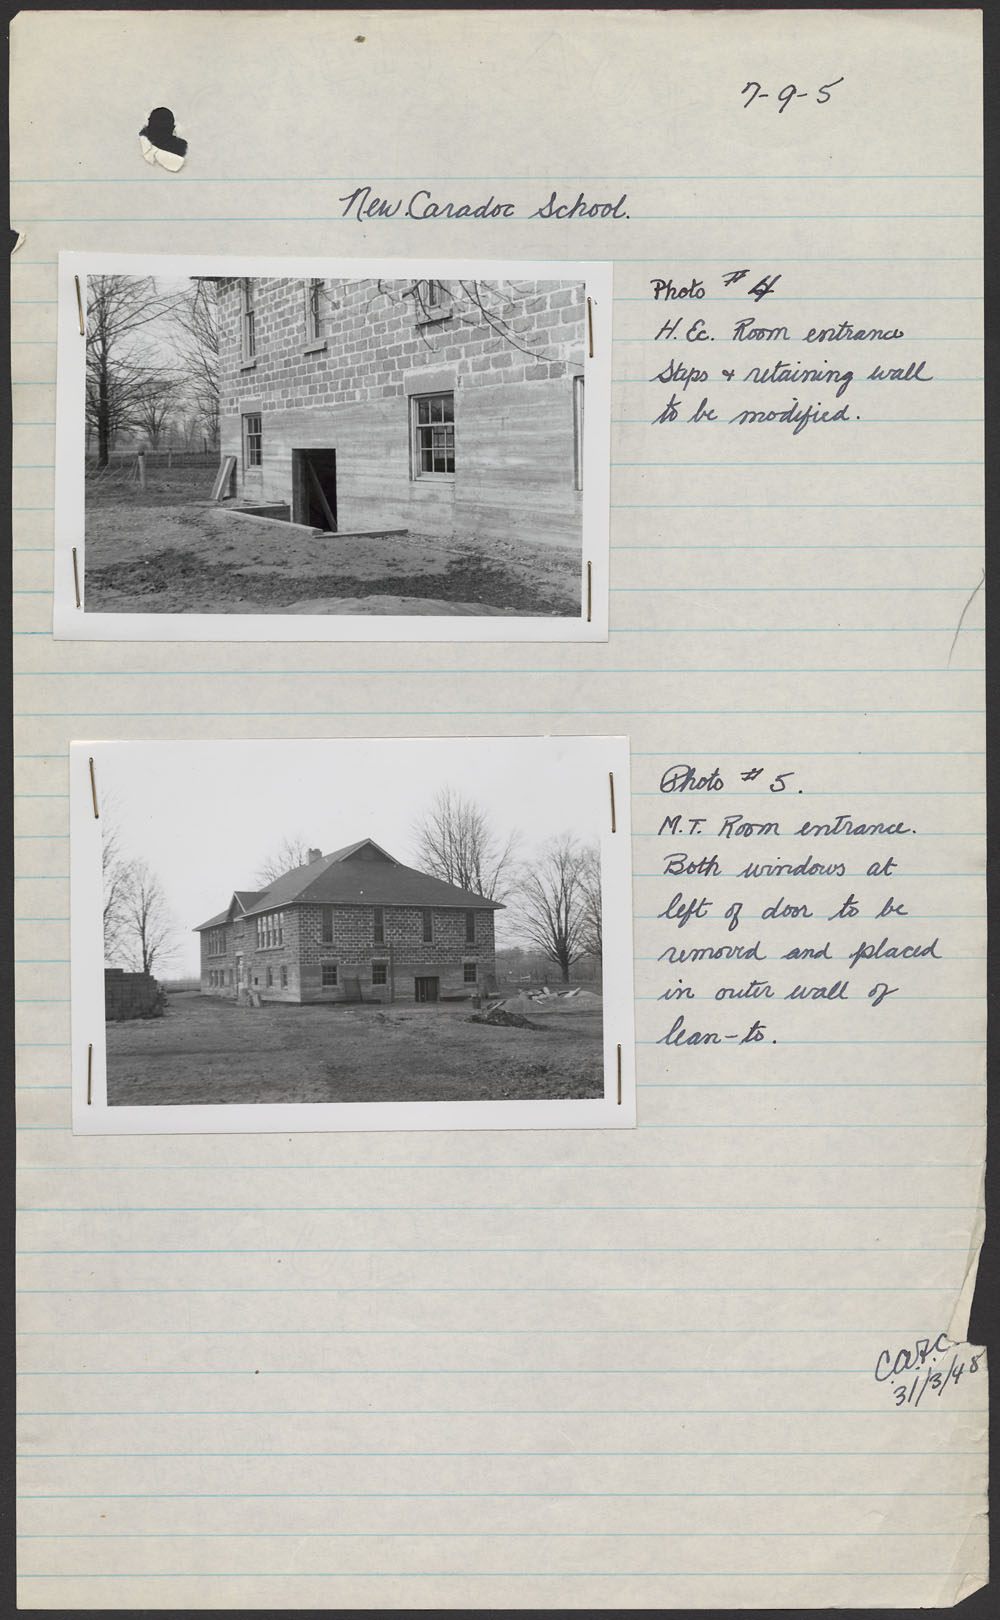 New Caradoc School, two views of the school exterior, Mount Elgin, March 31, 1948